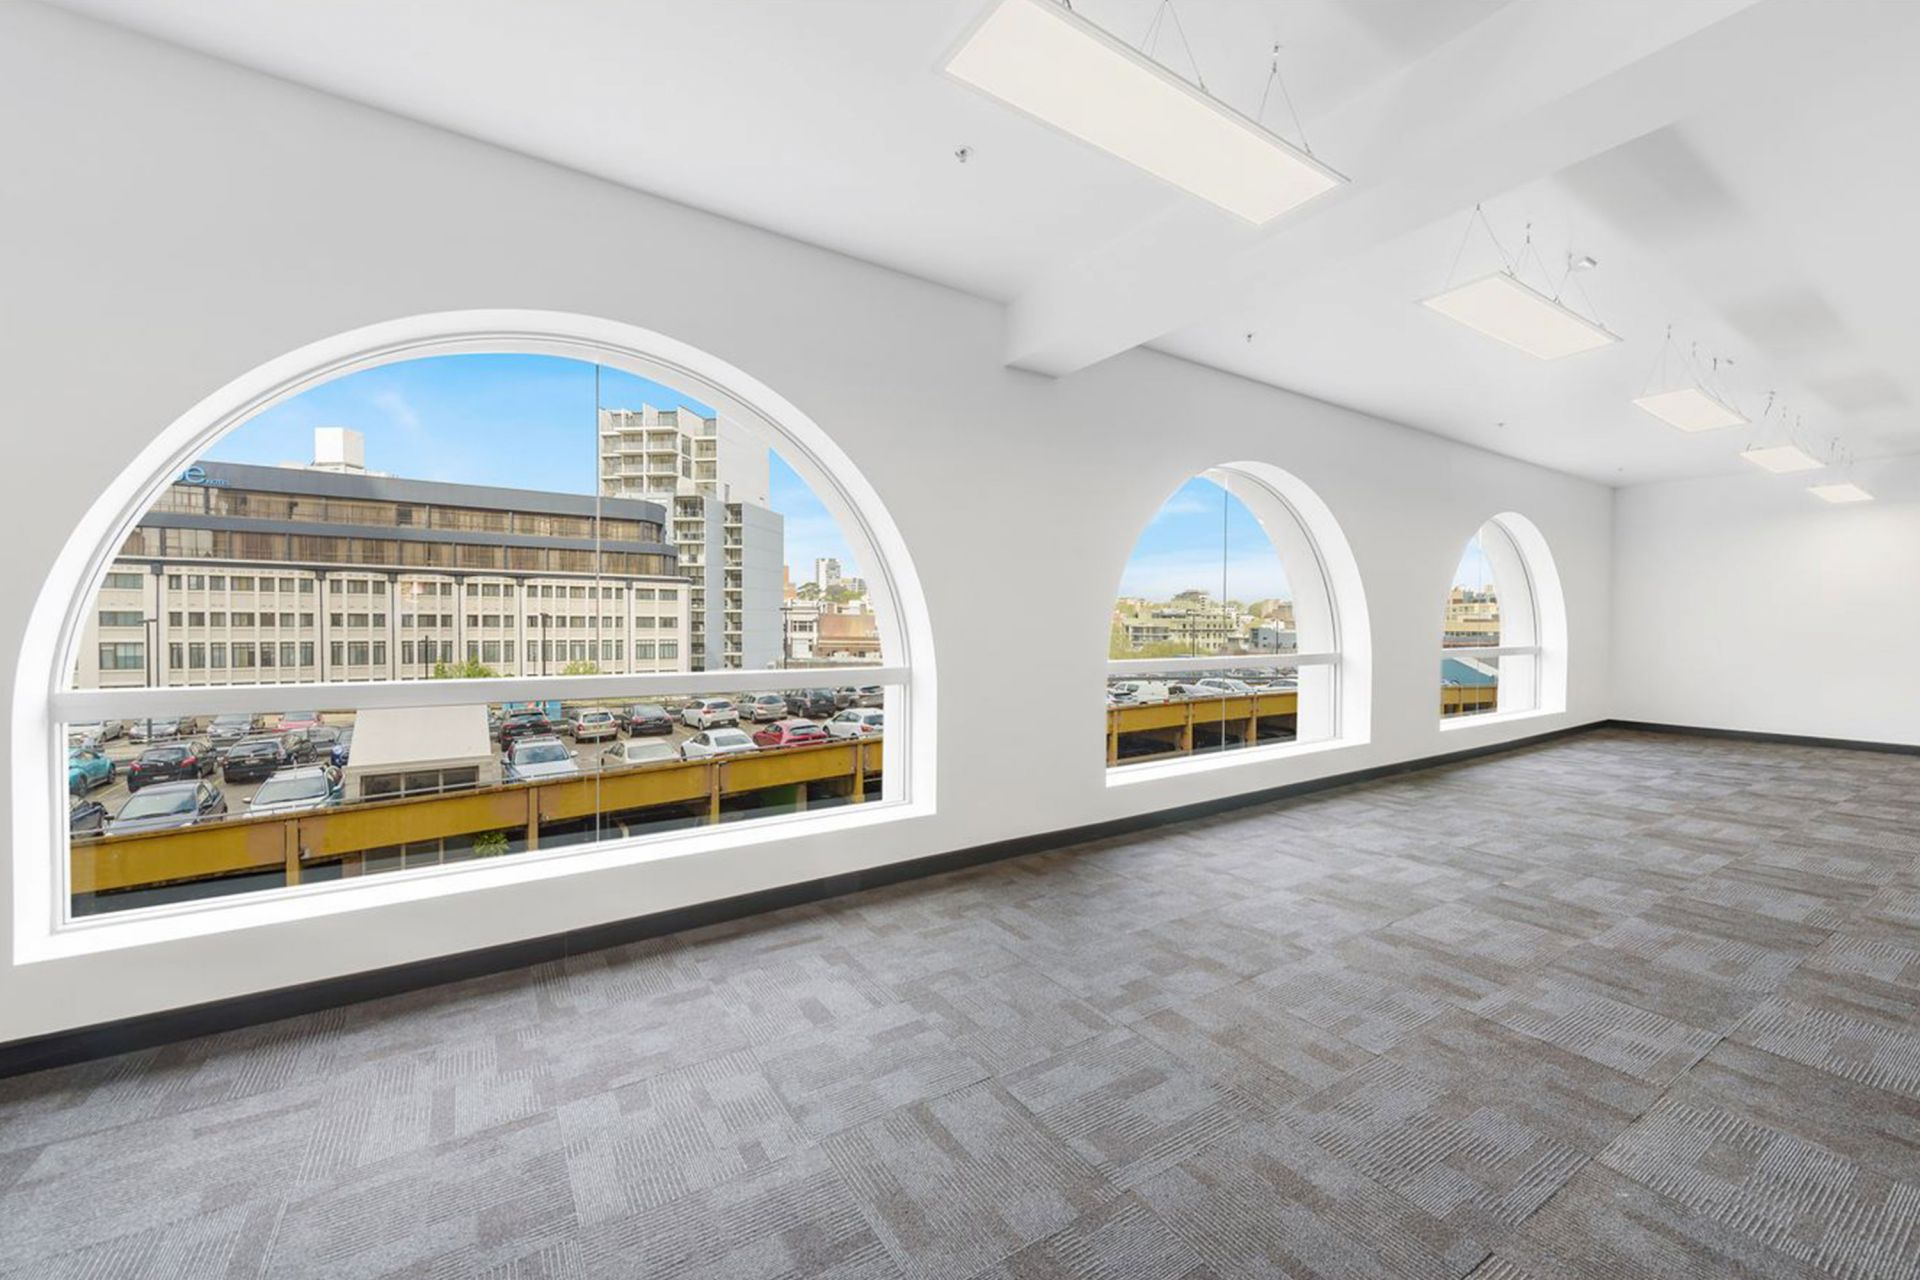 Arched windows and exposed ceilings